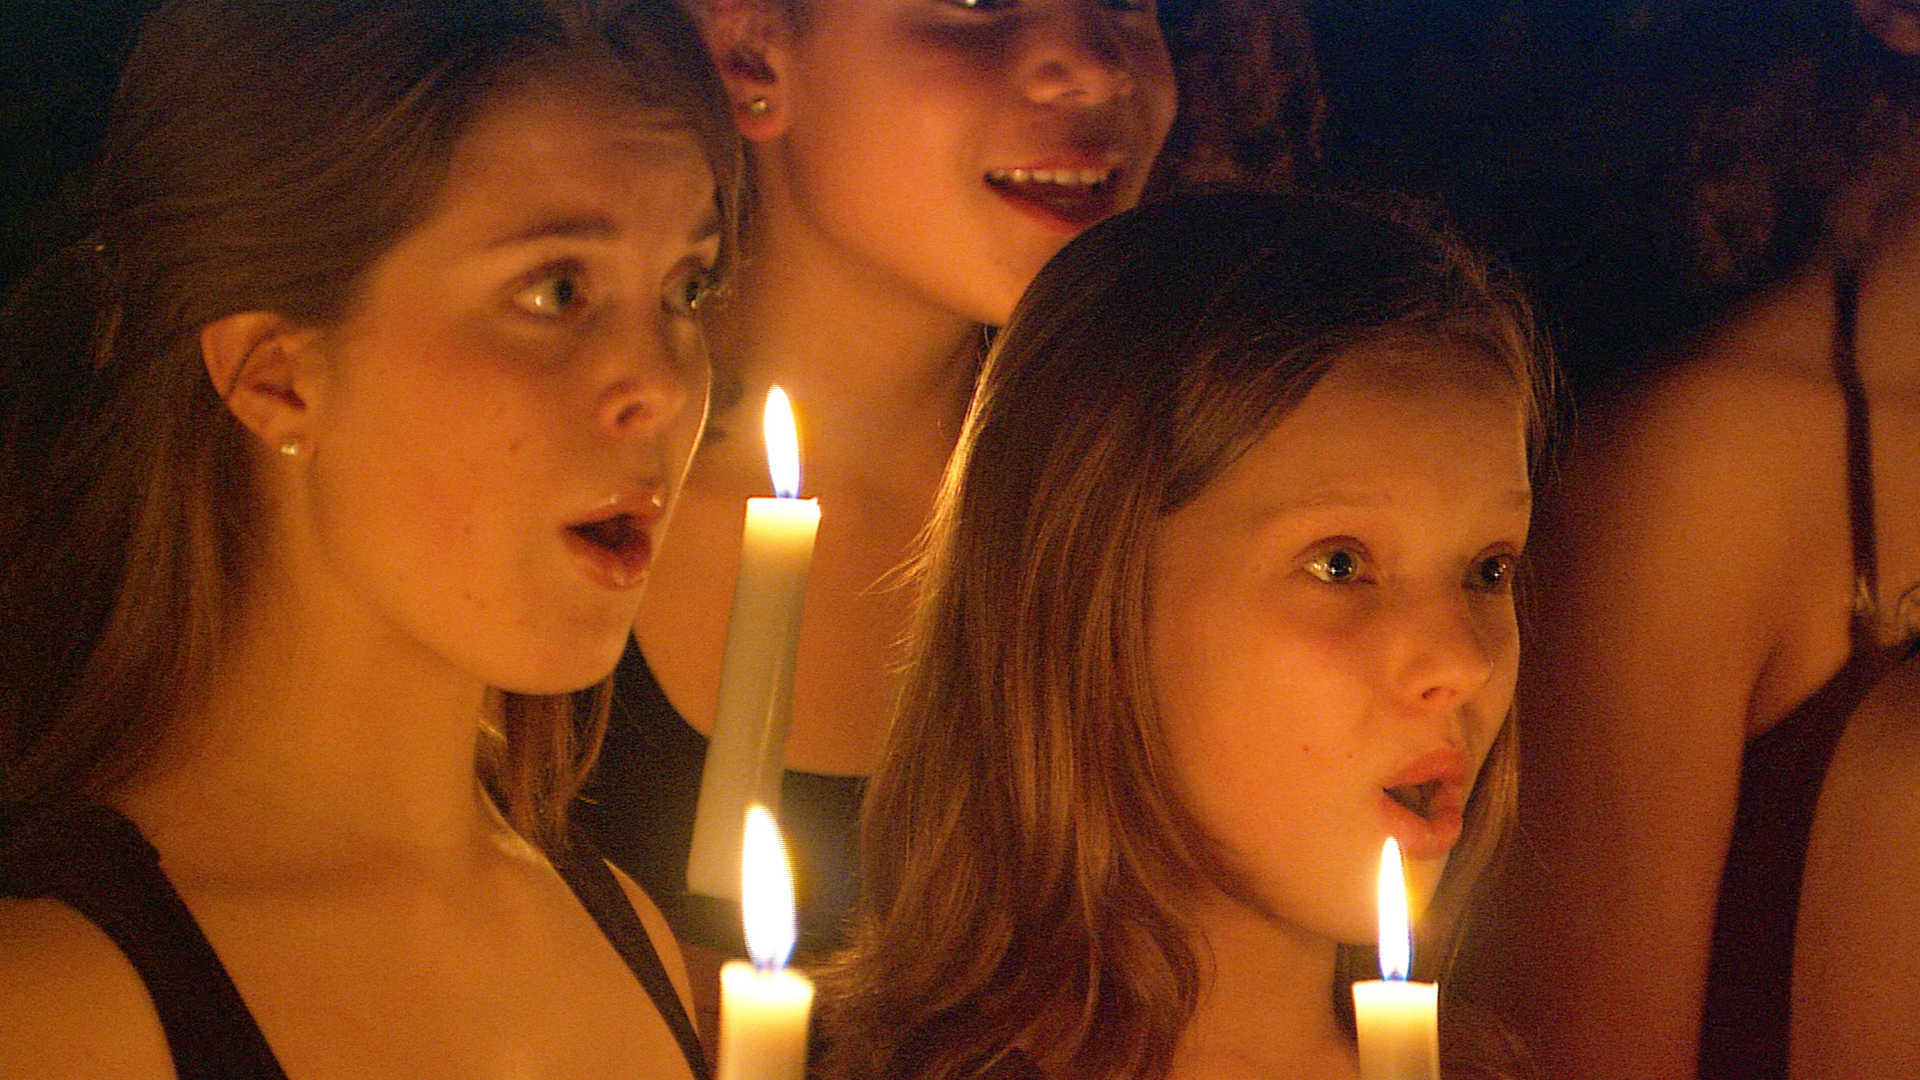 Norwegian Girls Choir